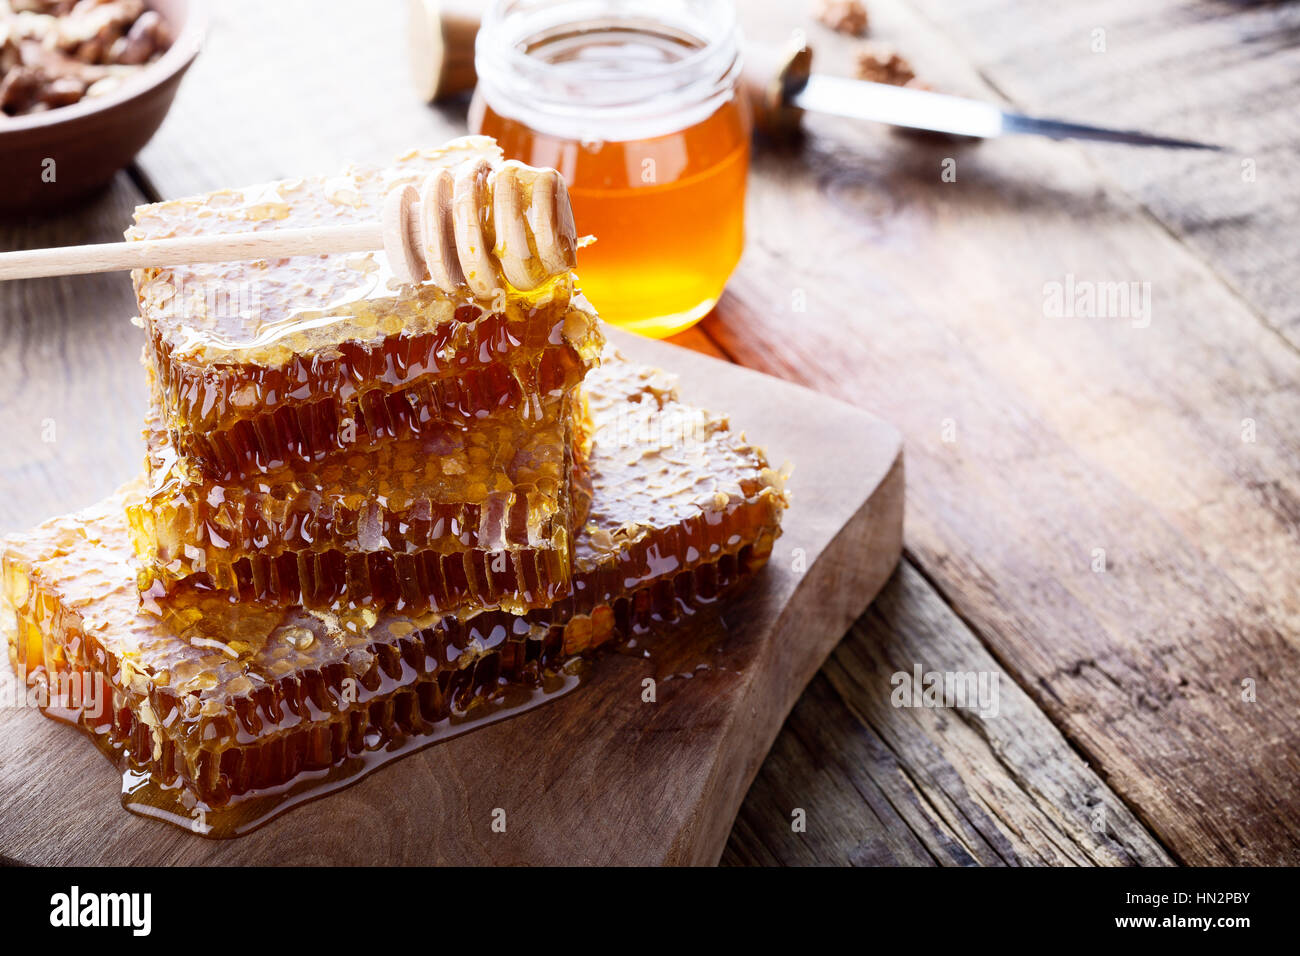 Organic  raw honeycombs on wooden board, pure natural sweet goodness - Stock Image